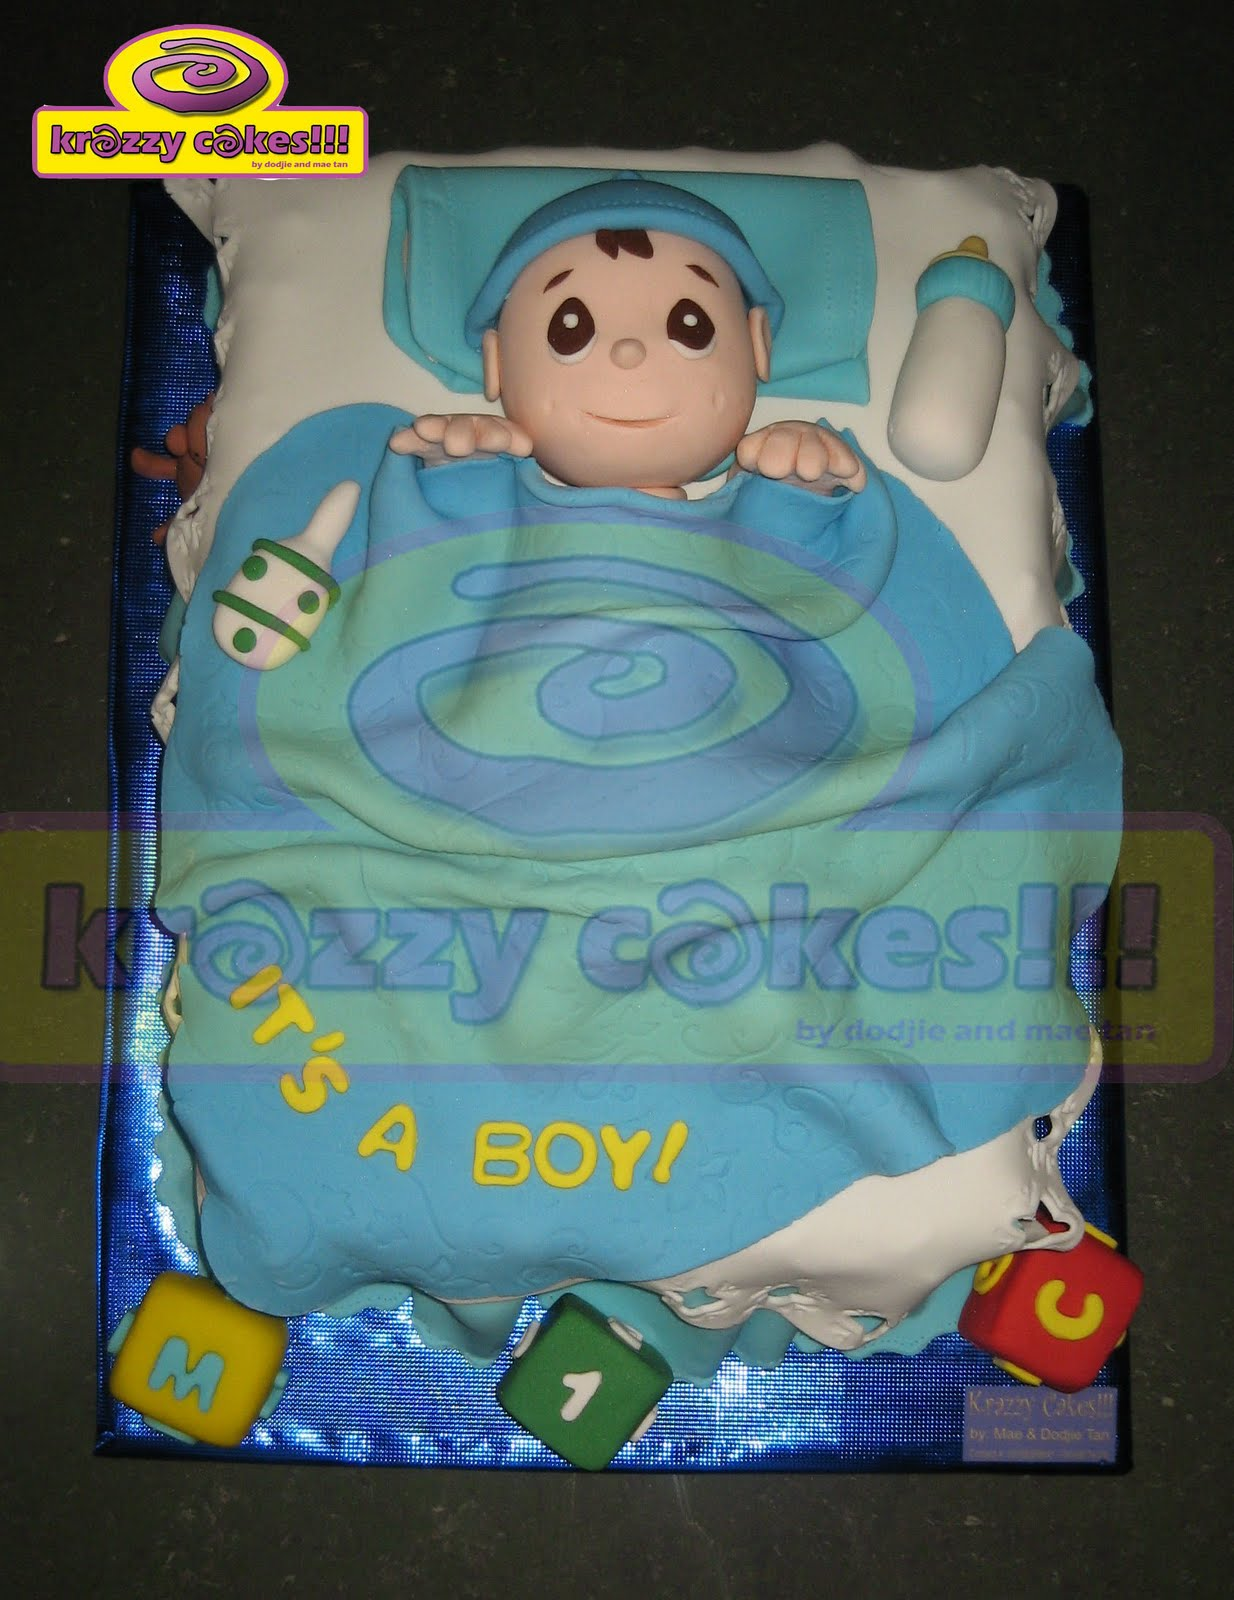 Images Of Newborn Baby Boy Cake : Krazzy Cakes!!!: Baby boy Cake